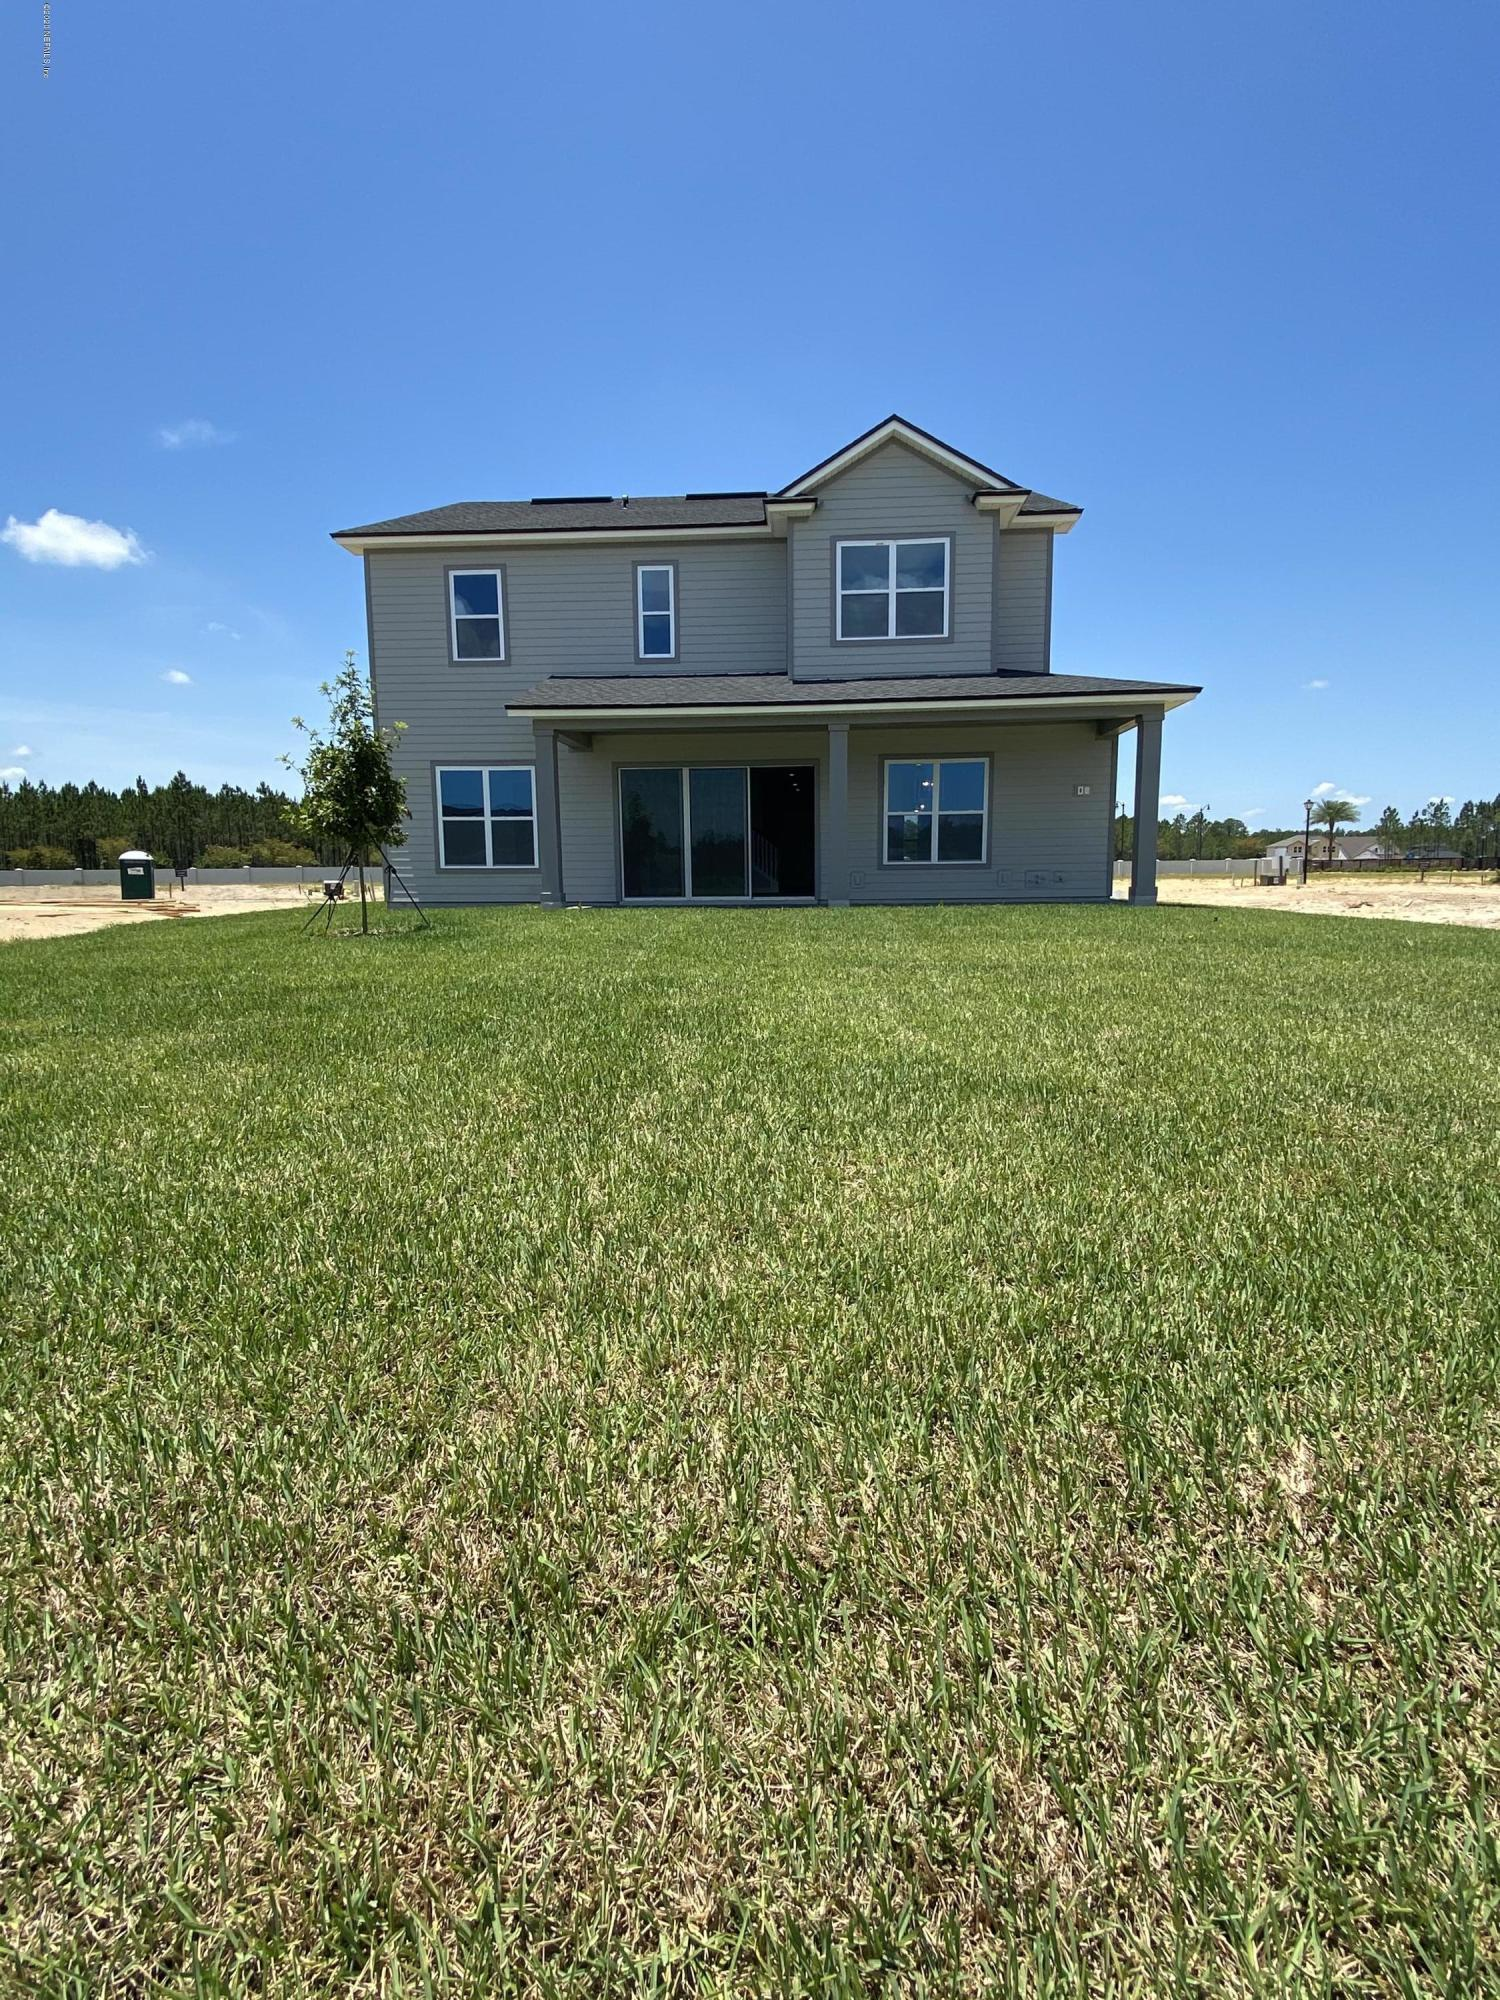 9963 EXHIBITION, JACKSONVILLE, FLORIDA 32256, 4 Bedrooms Bedrooms, ,3 BathroomsBathrooms,Residential,For sale,EXHIBITION,1029013